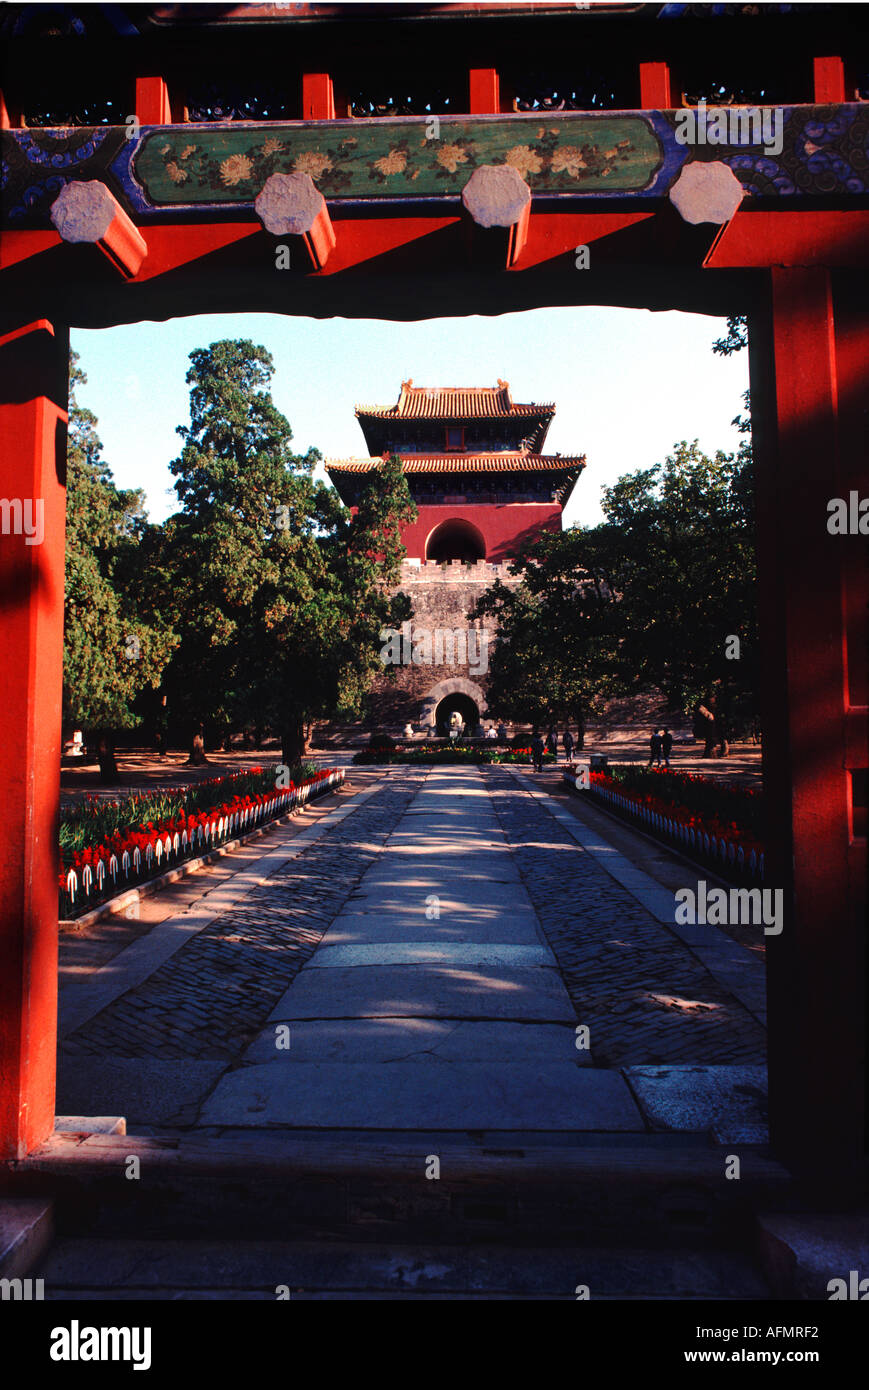 1741 Ming Dynasty tombs near Beijing Peking China Asia architecture old royalty rullers ancient building - Stock Image